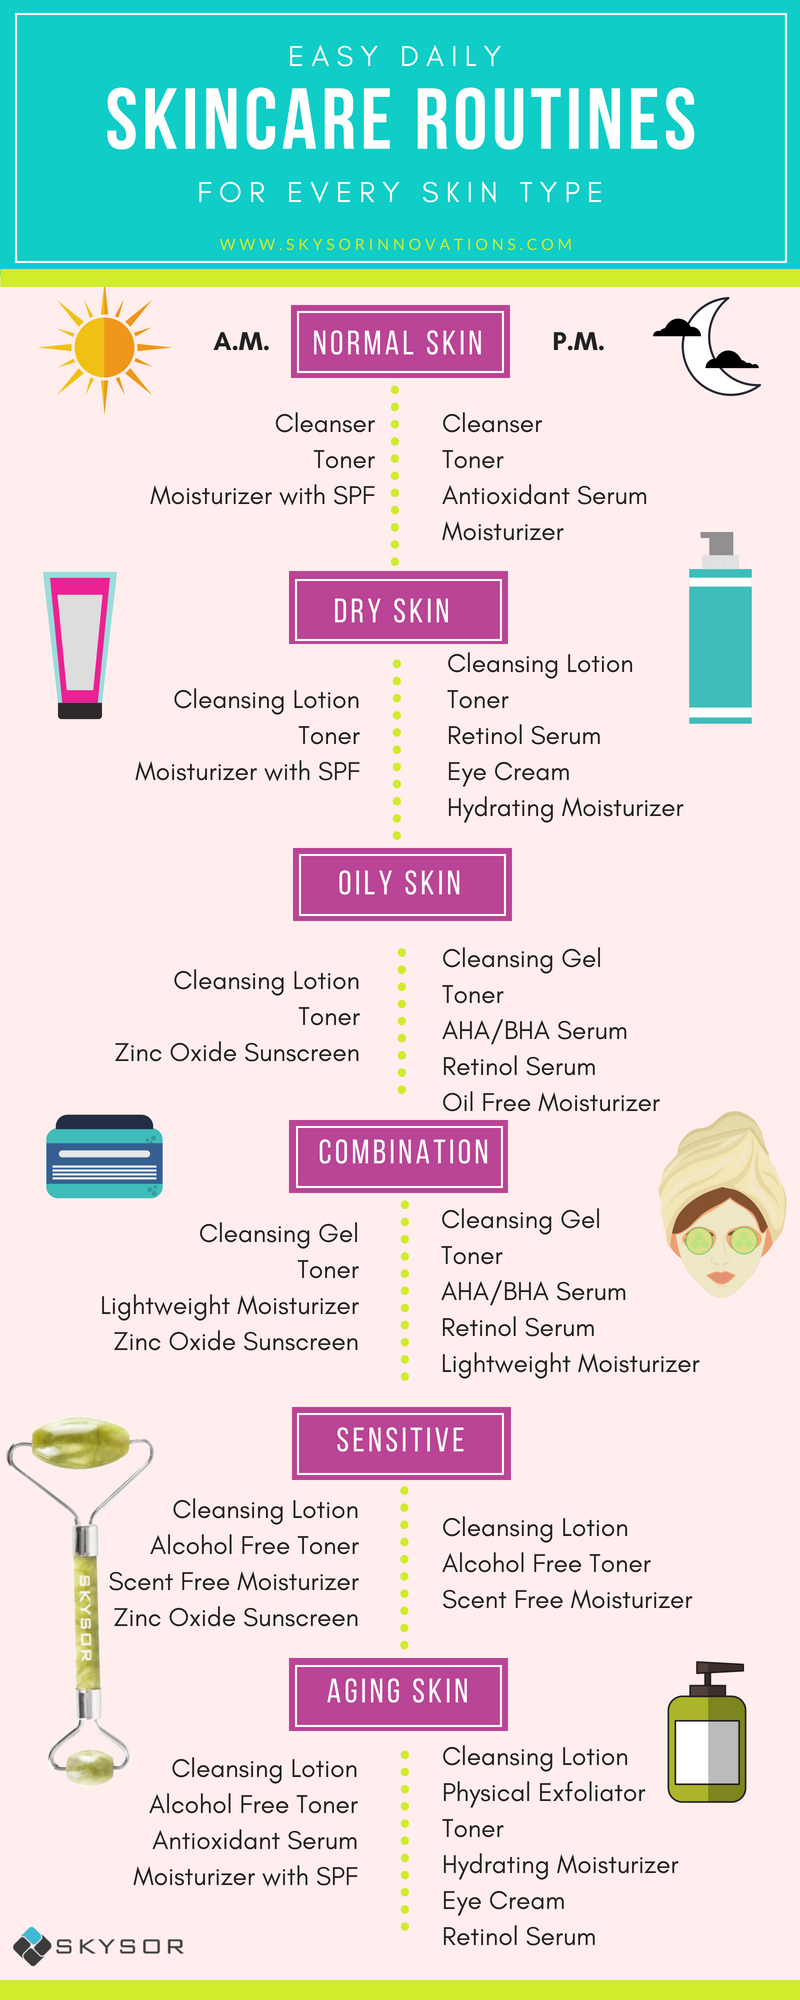 Easy Everyday Skincare Routines For Different Skin Types How To Apply Beauty Products The R Everyday Skin Care Routine Everyday Skincare Everyday Skin Routine